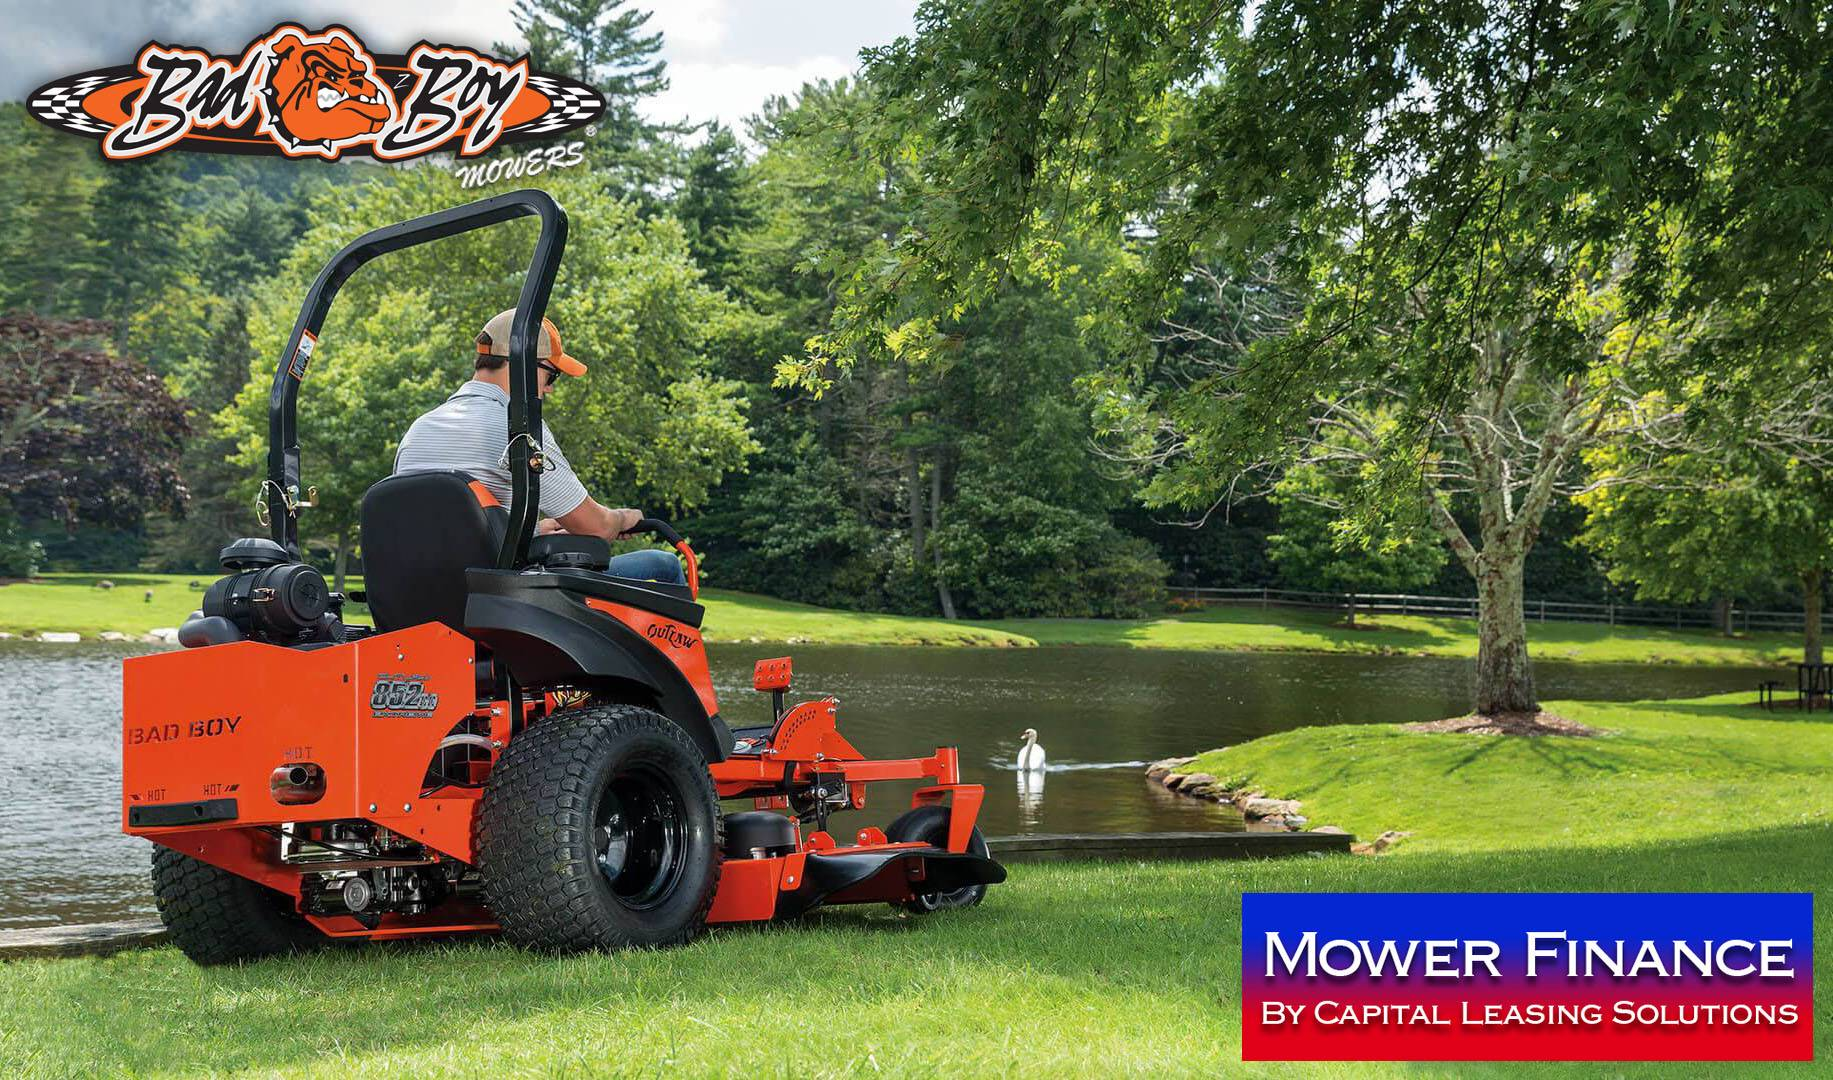 Bad Boy Mowers - Mower Finance